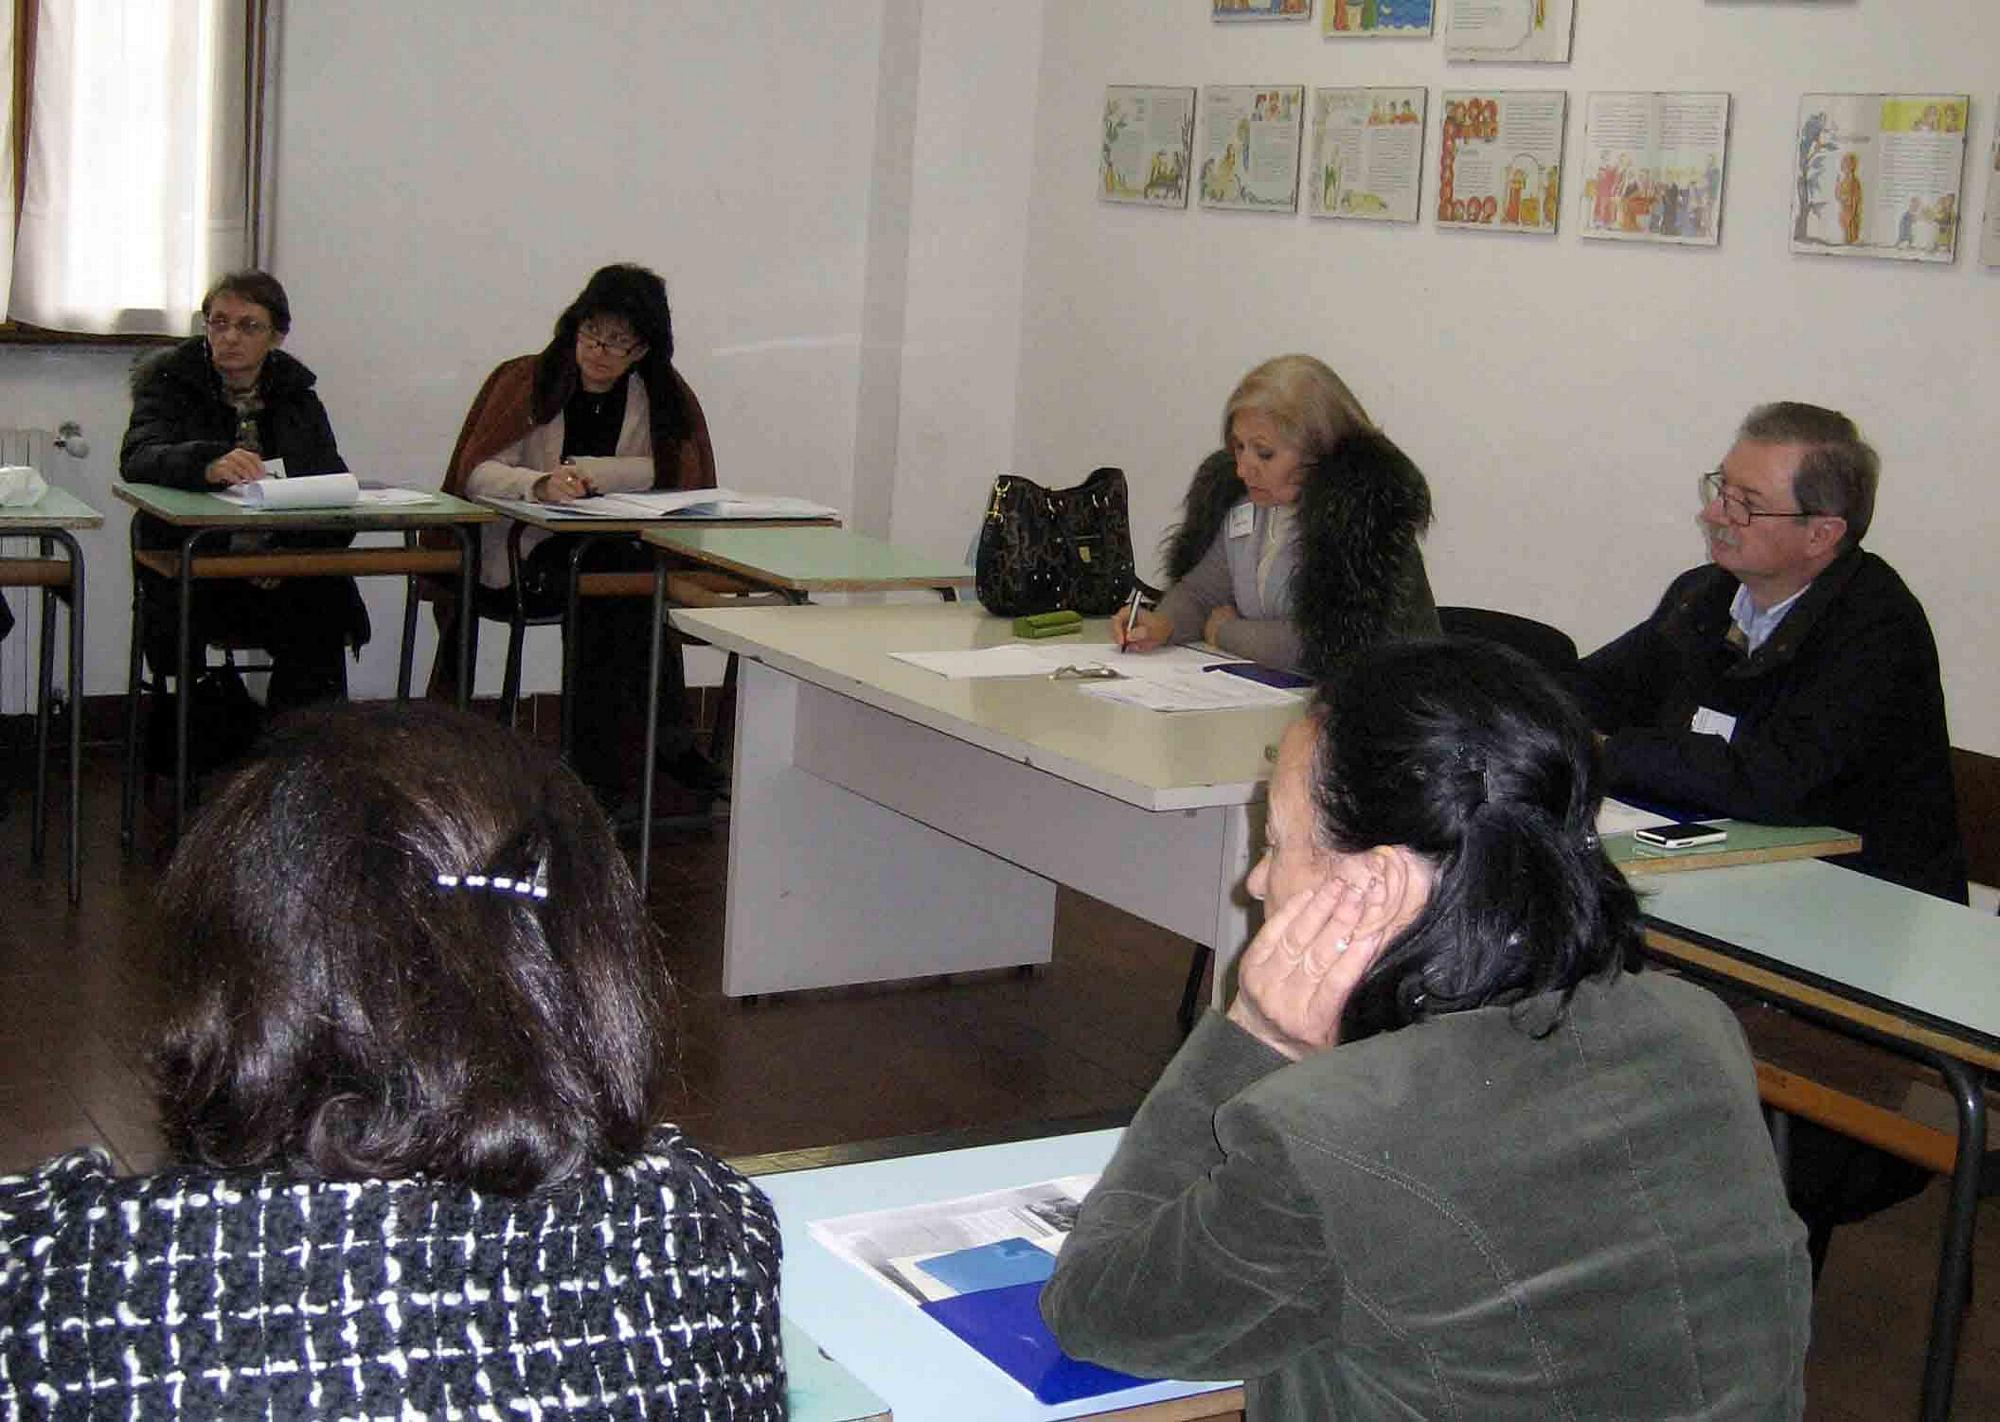 Working group 1 2009